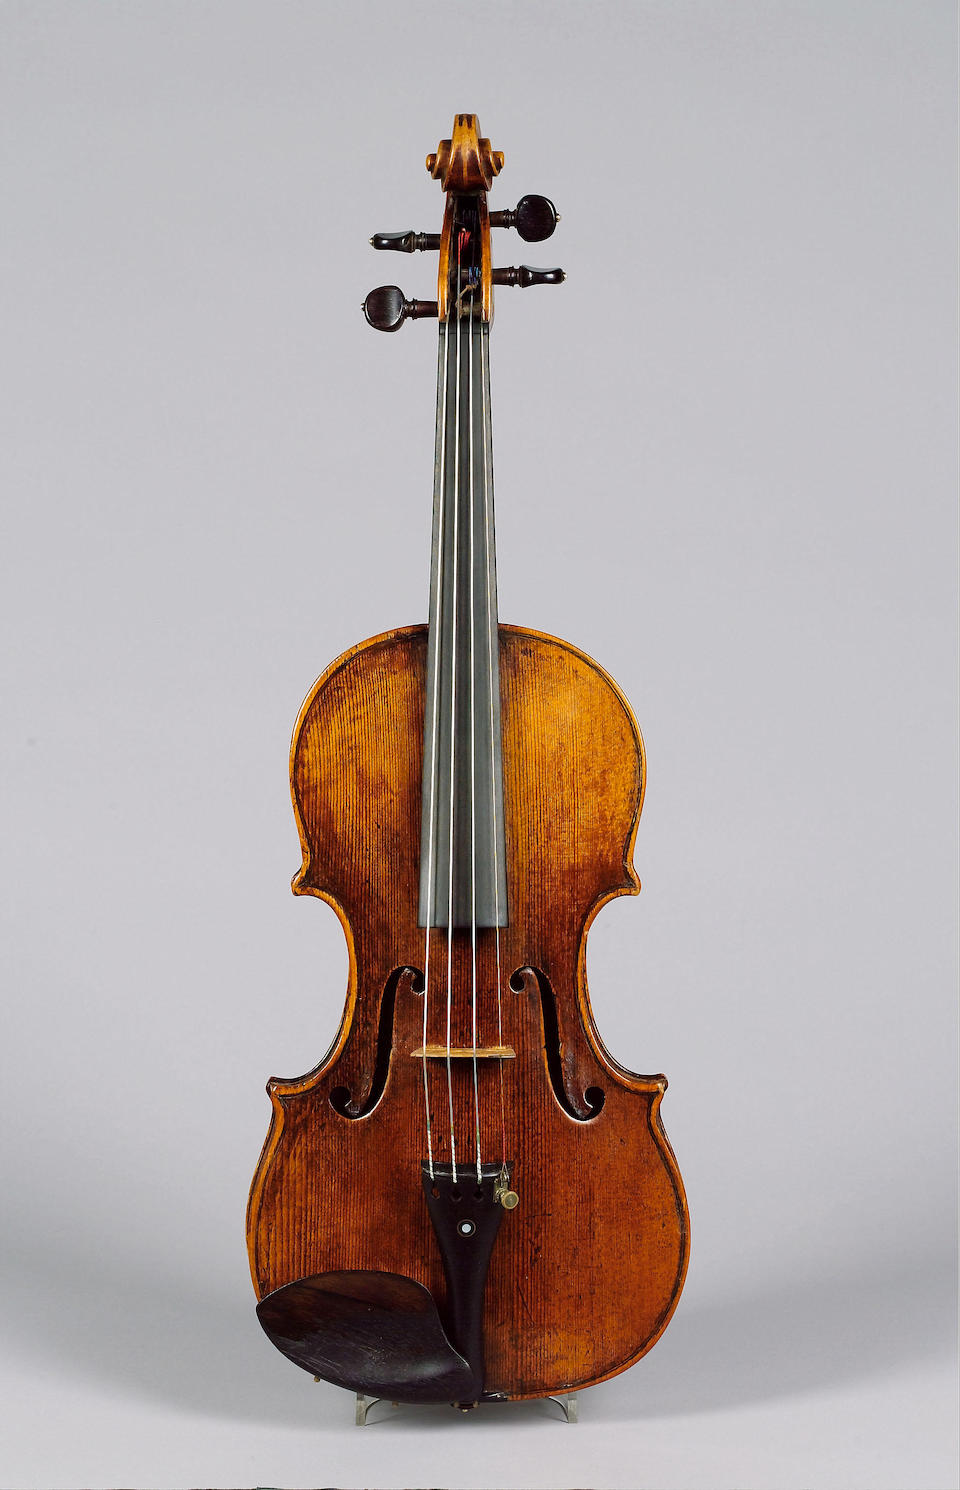 A very interesting Violin last quarter of 18th century